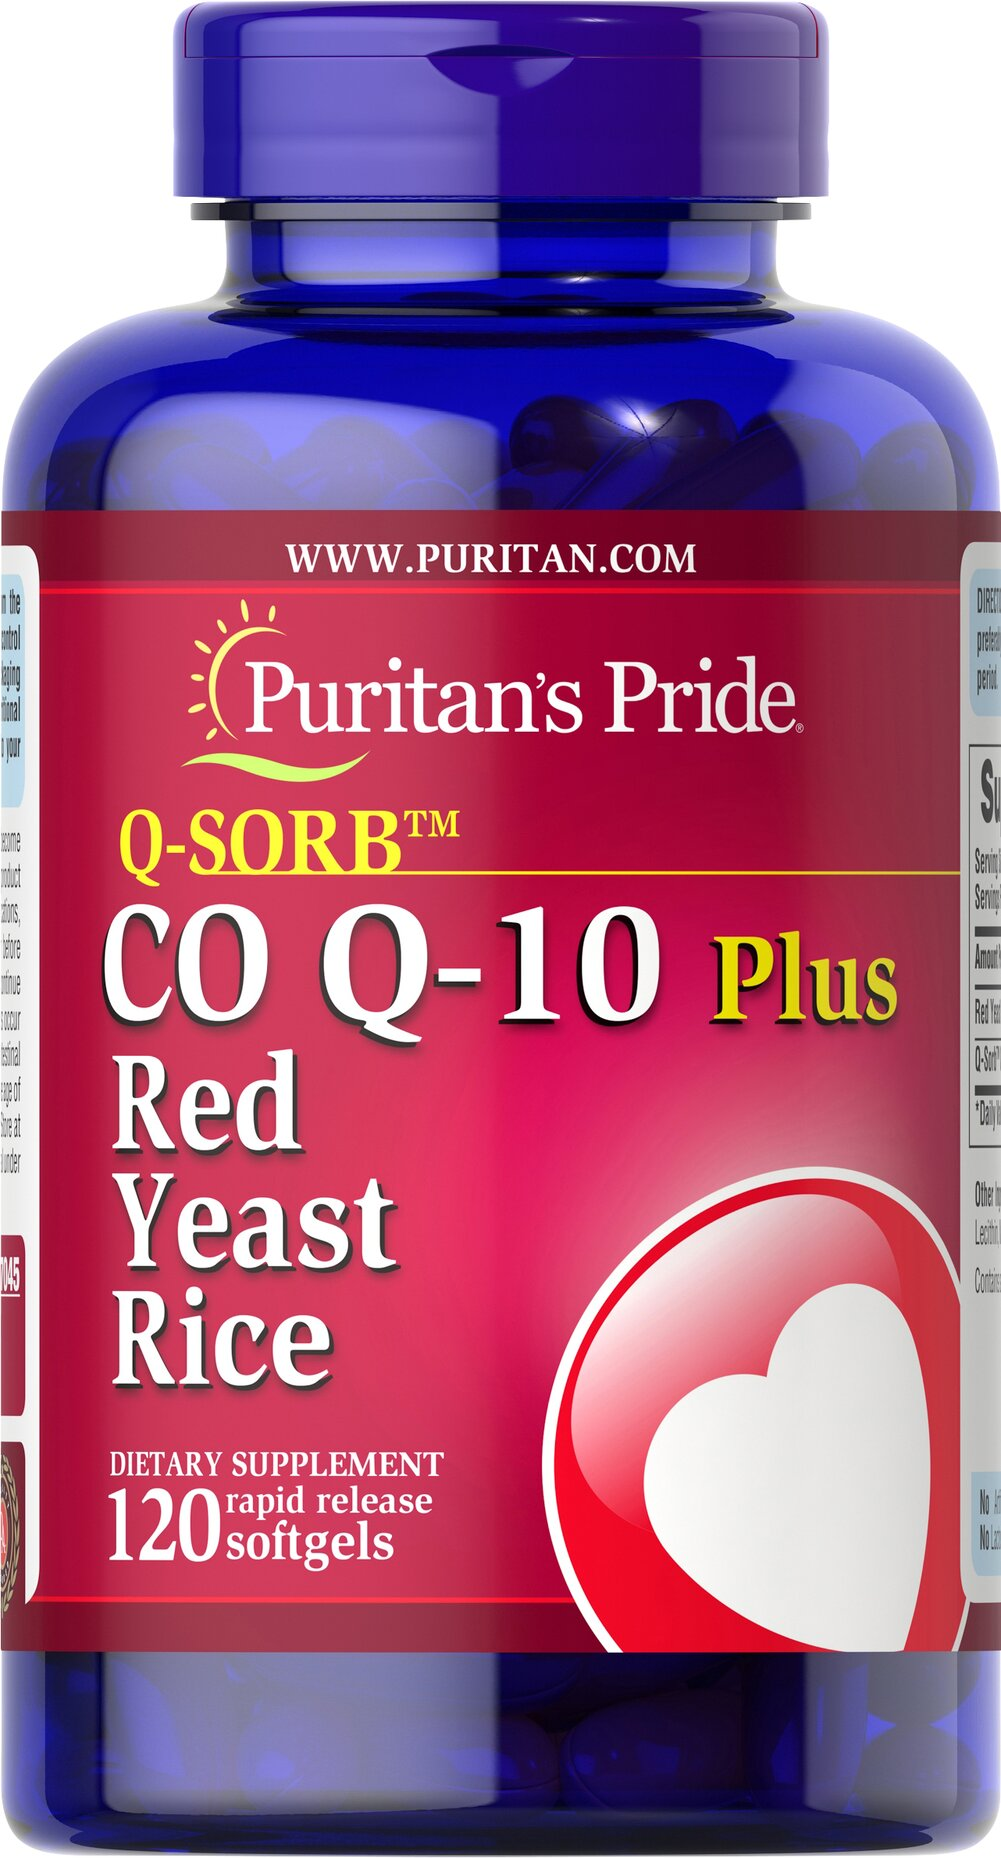 Q-SORB™ Co Q-10 Plus Red Yeast Rice Thumbnail Alternate Bottle View